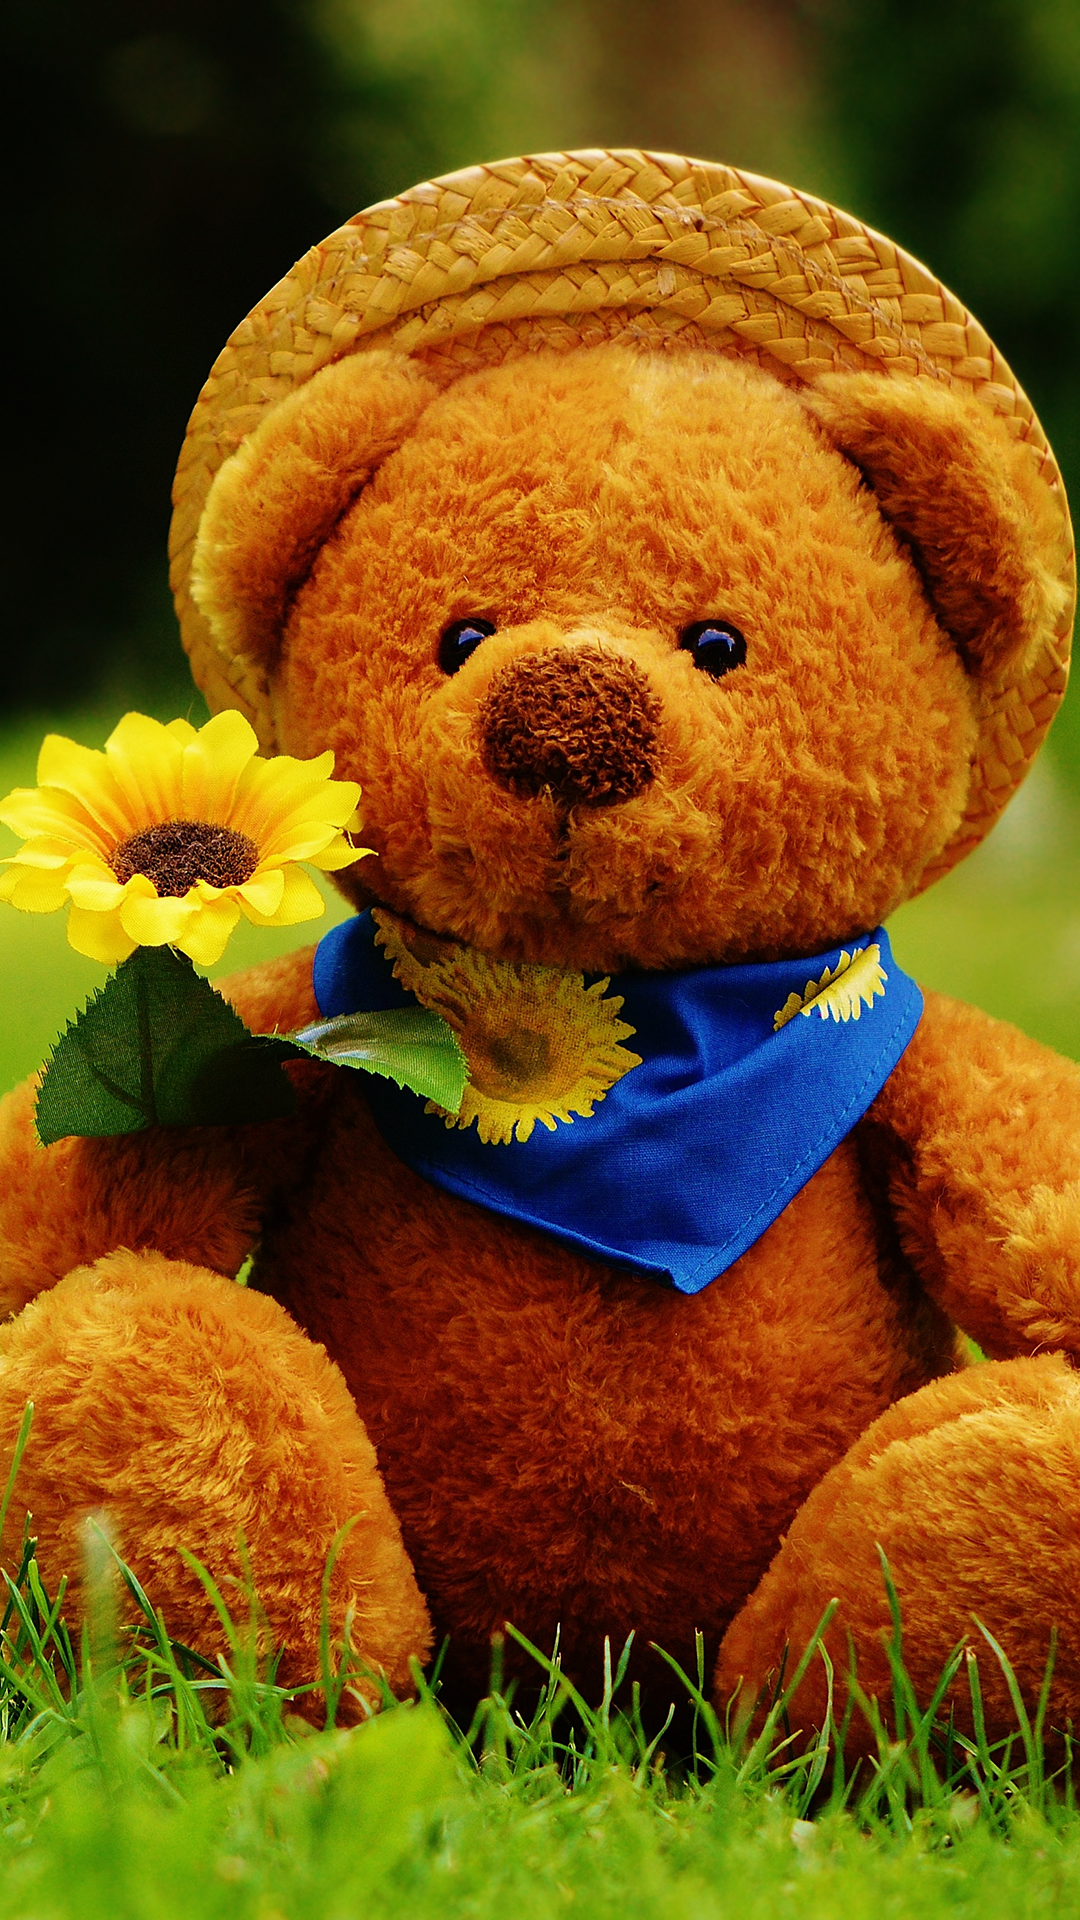 Cute Garden Teddy Bear Iphone Wallpapers Tap To See More